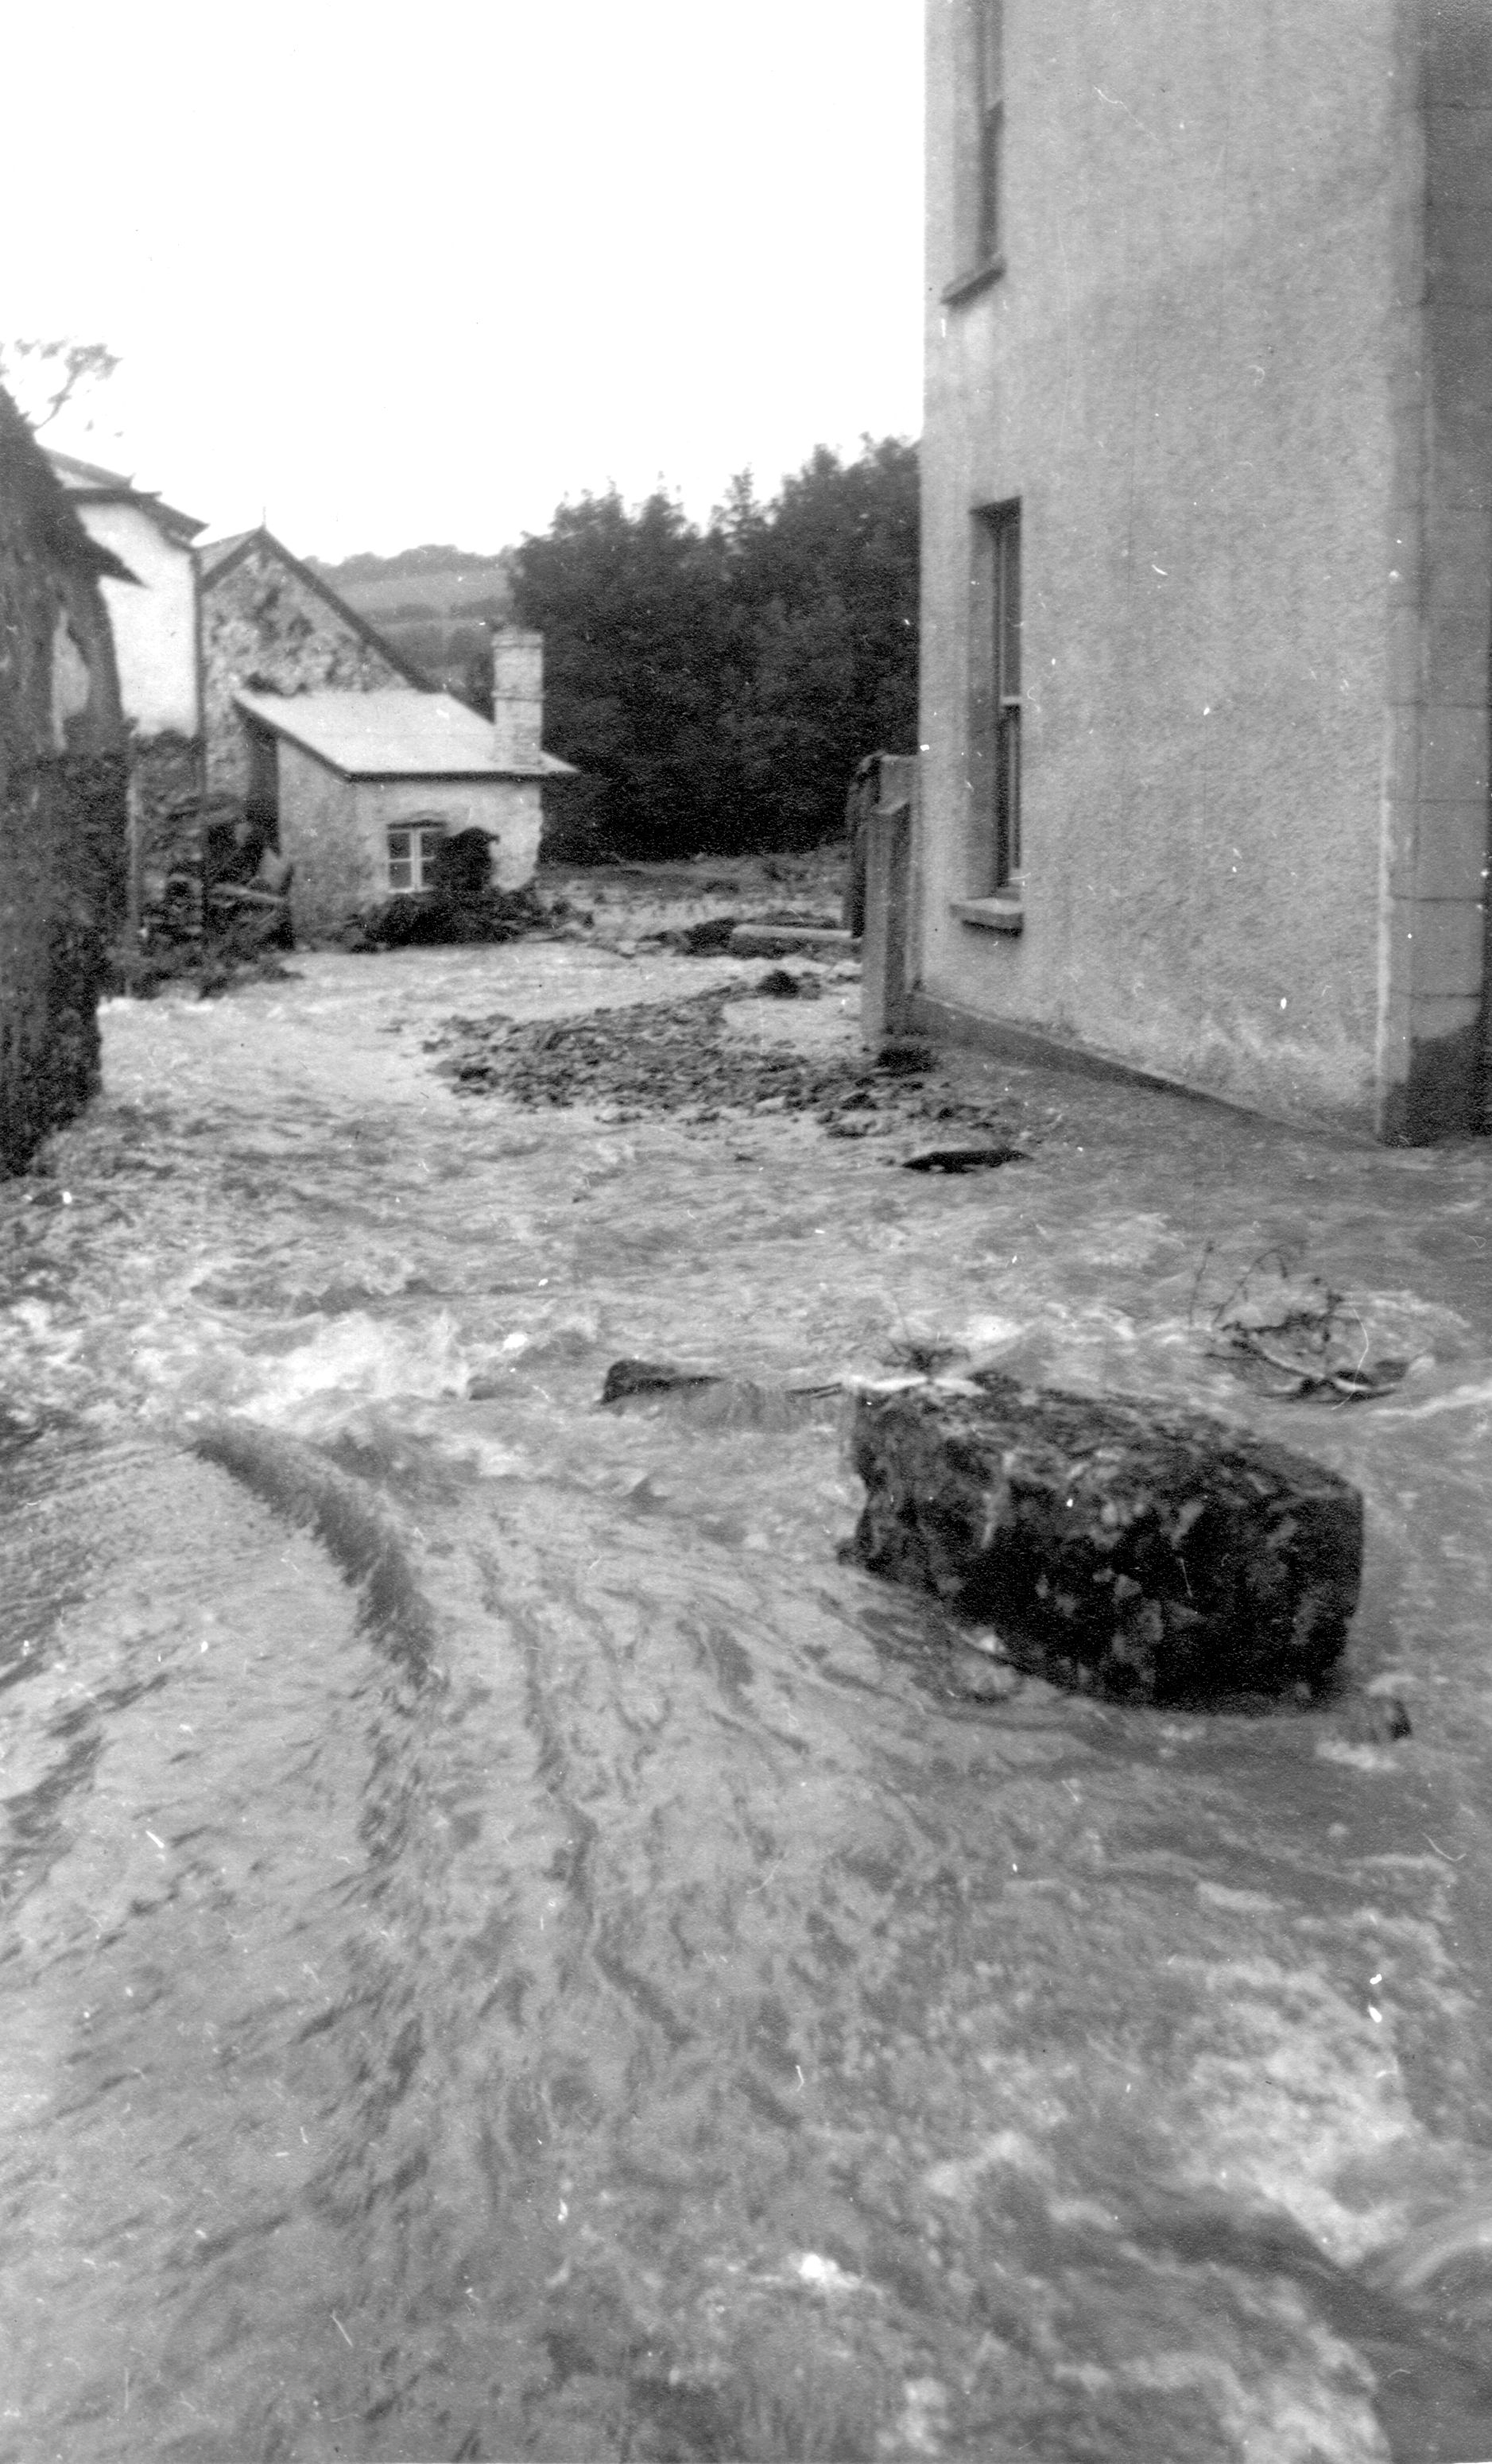 Parracombe Flood of 1952 - Kind permission of Barbara Ford